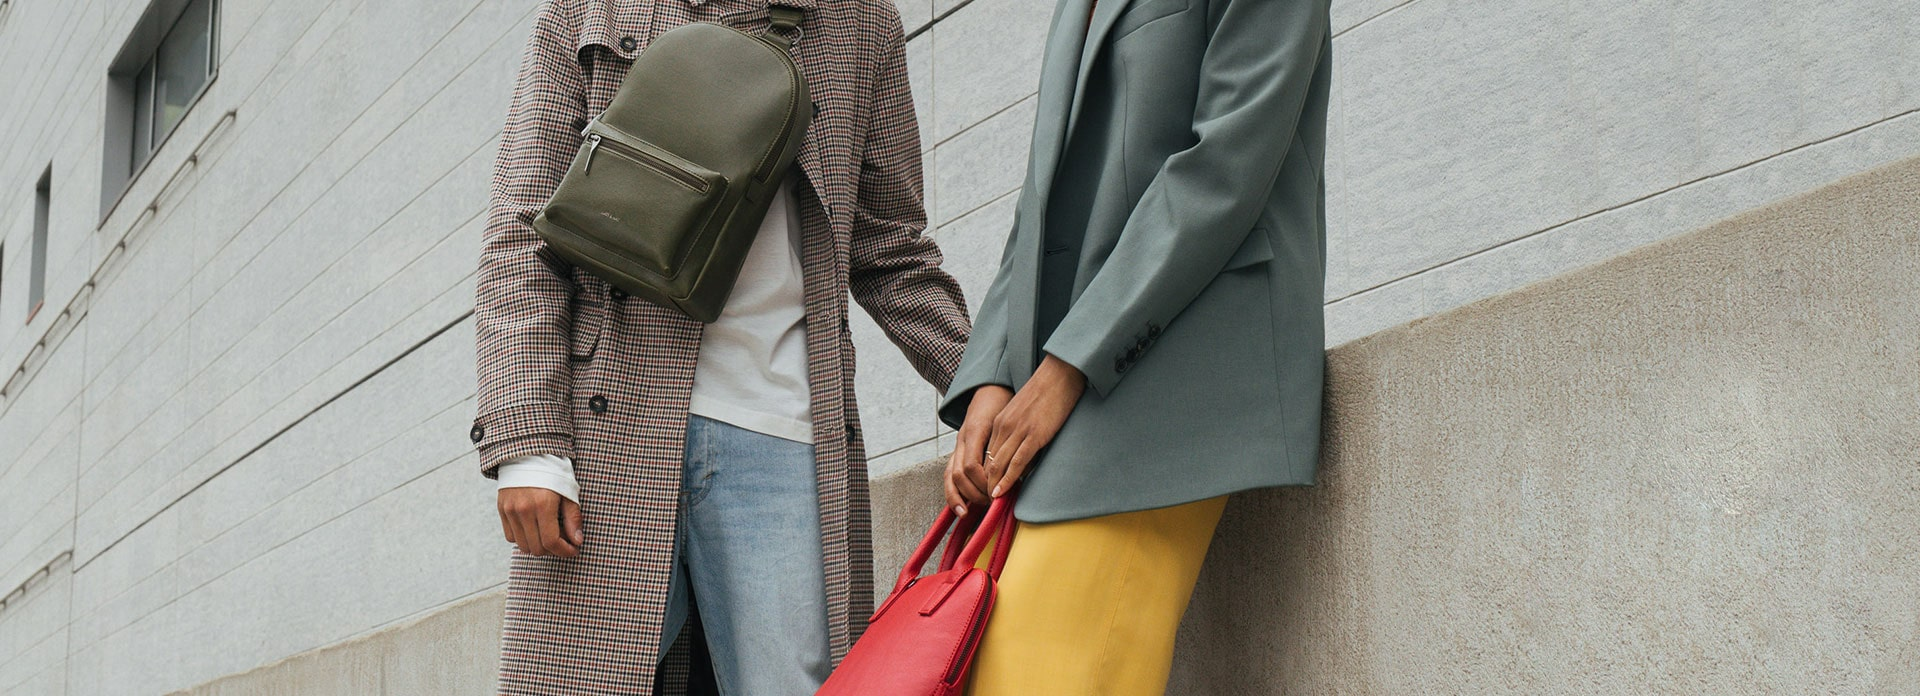 Man in a trench coat with a backpack across his body casually standing next to a woman holding a red purse in her hands.